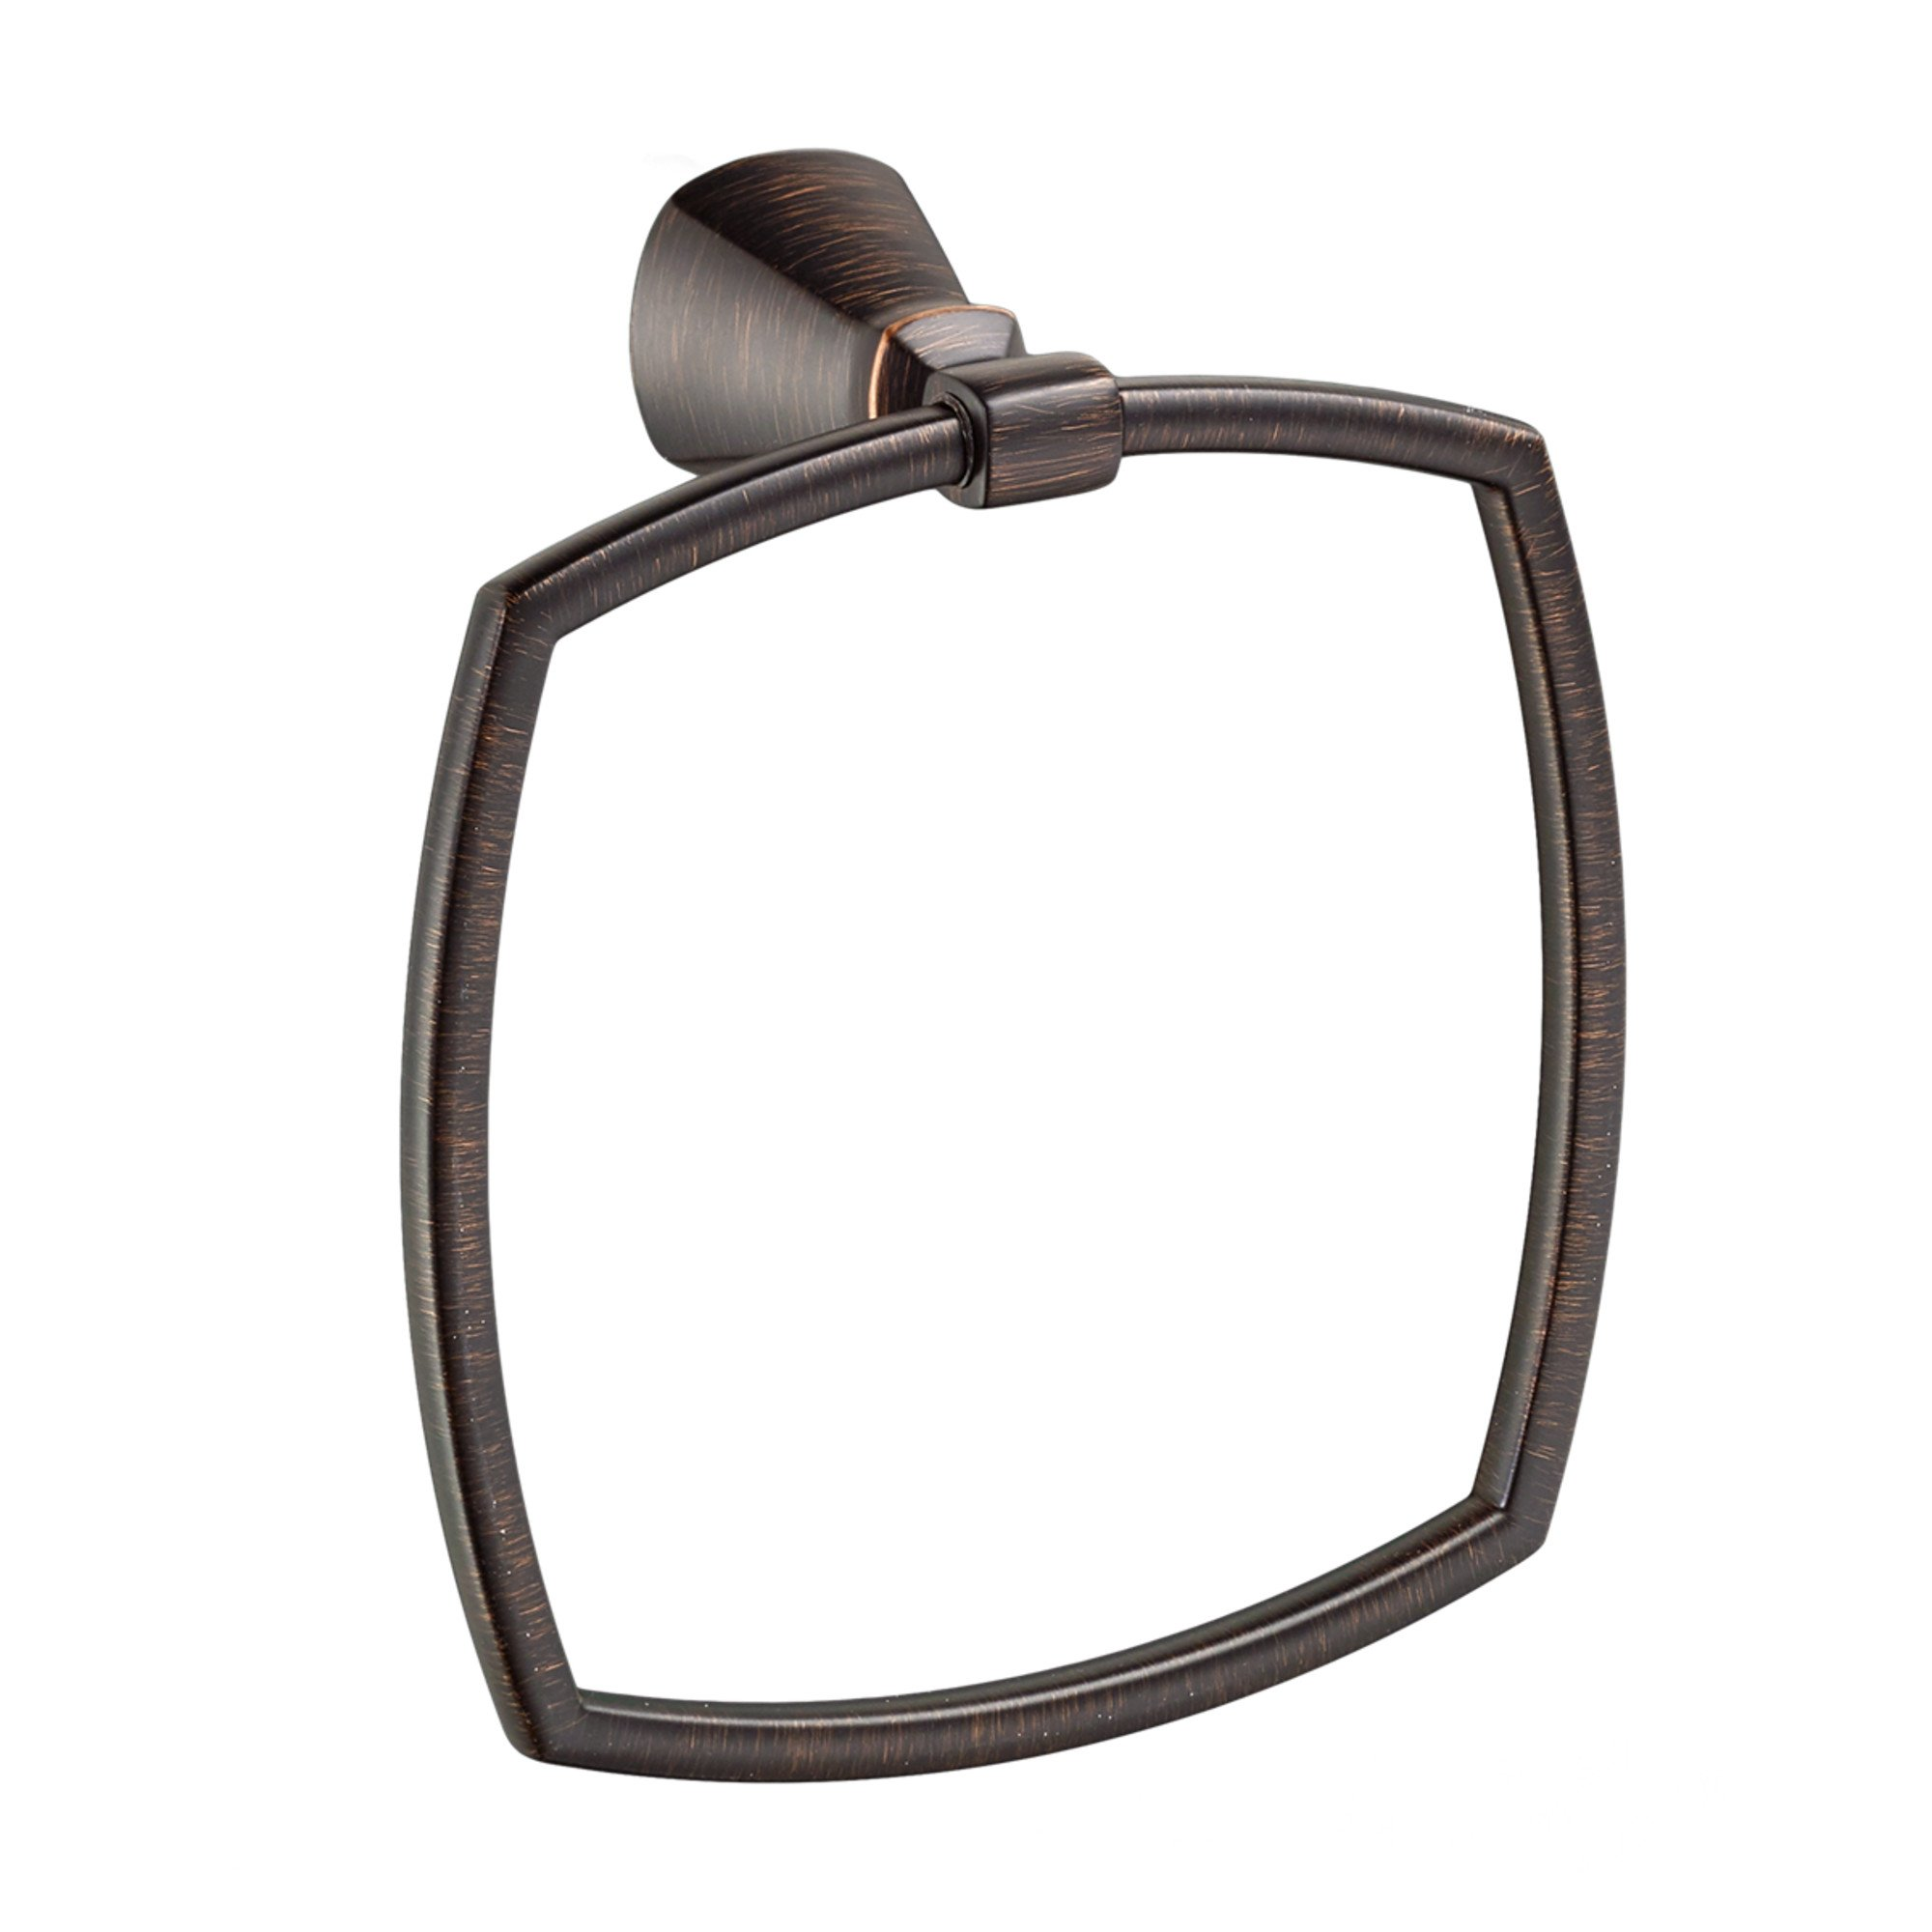 American Standard 7018190.278 Edgemere Towel Ring, Legacy Bronze